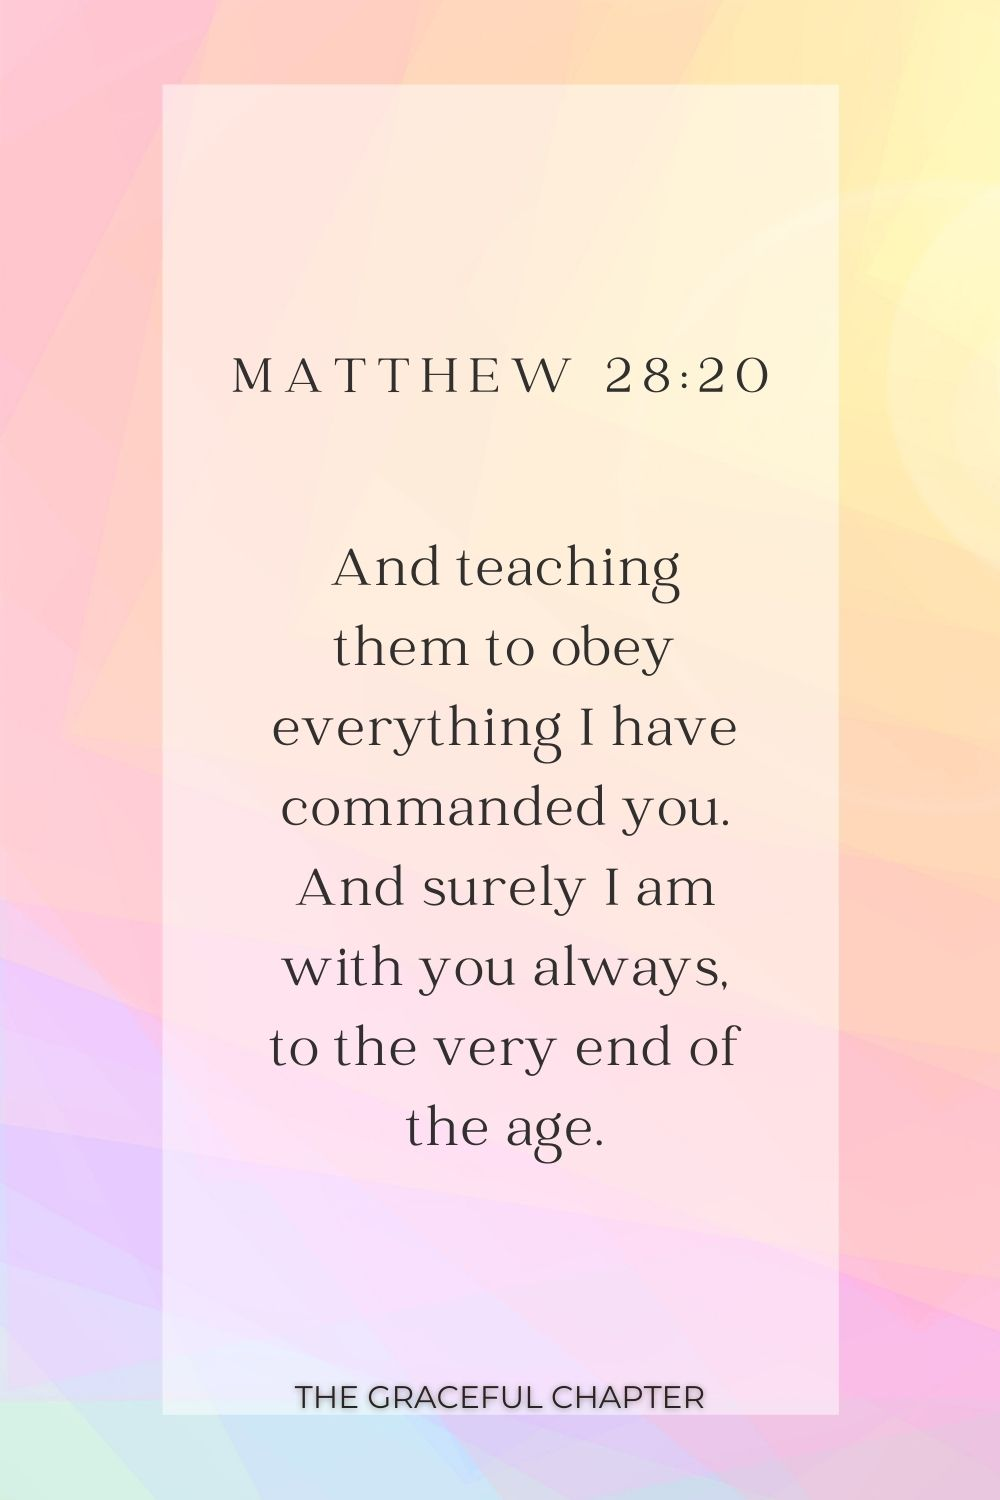 And teaching them to obey everything I have commanded you. And surely I am with you always, to the very end of the age. Matthew 28:20